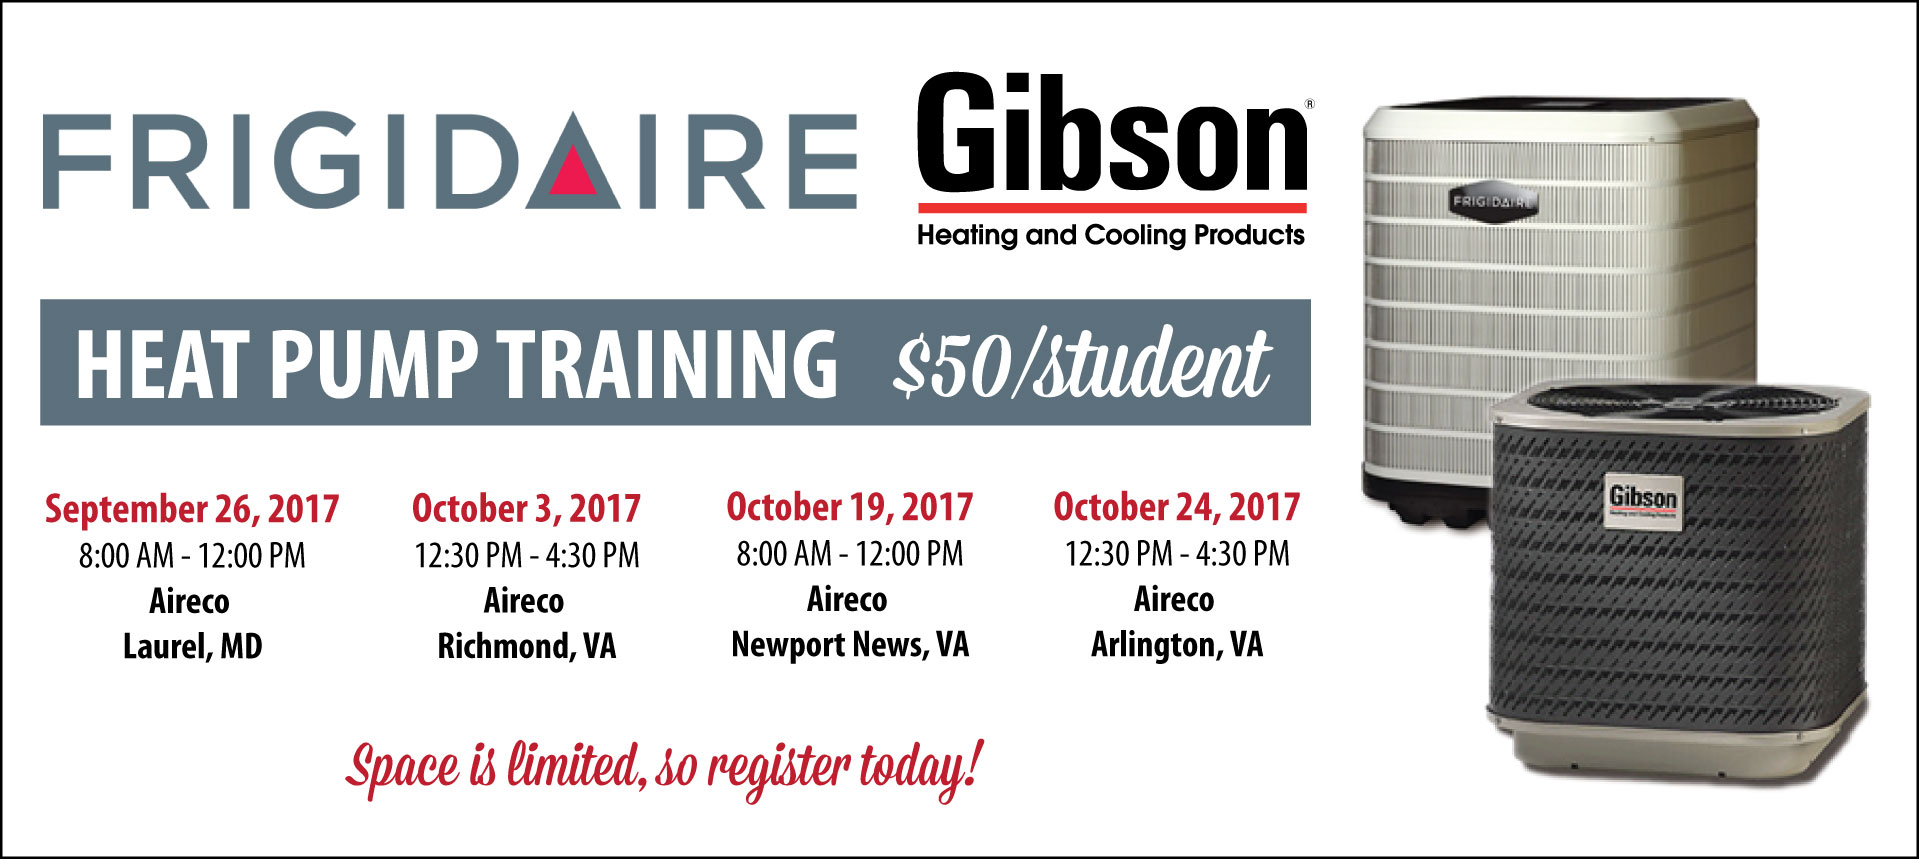 Frigidaire/Gibson Heat Pump Training  -  Oct. 24, 2017 (Arlington, VA)